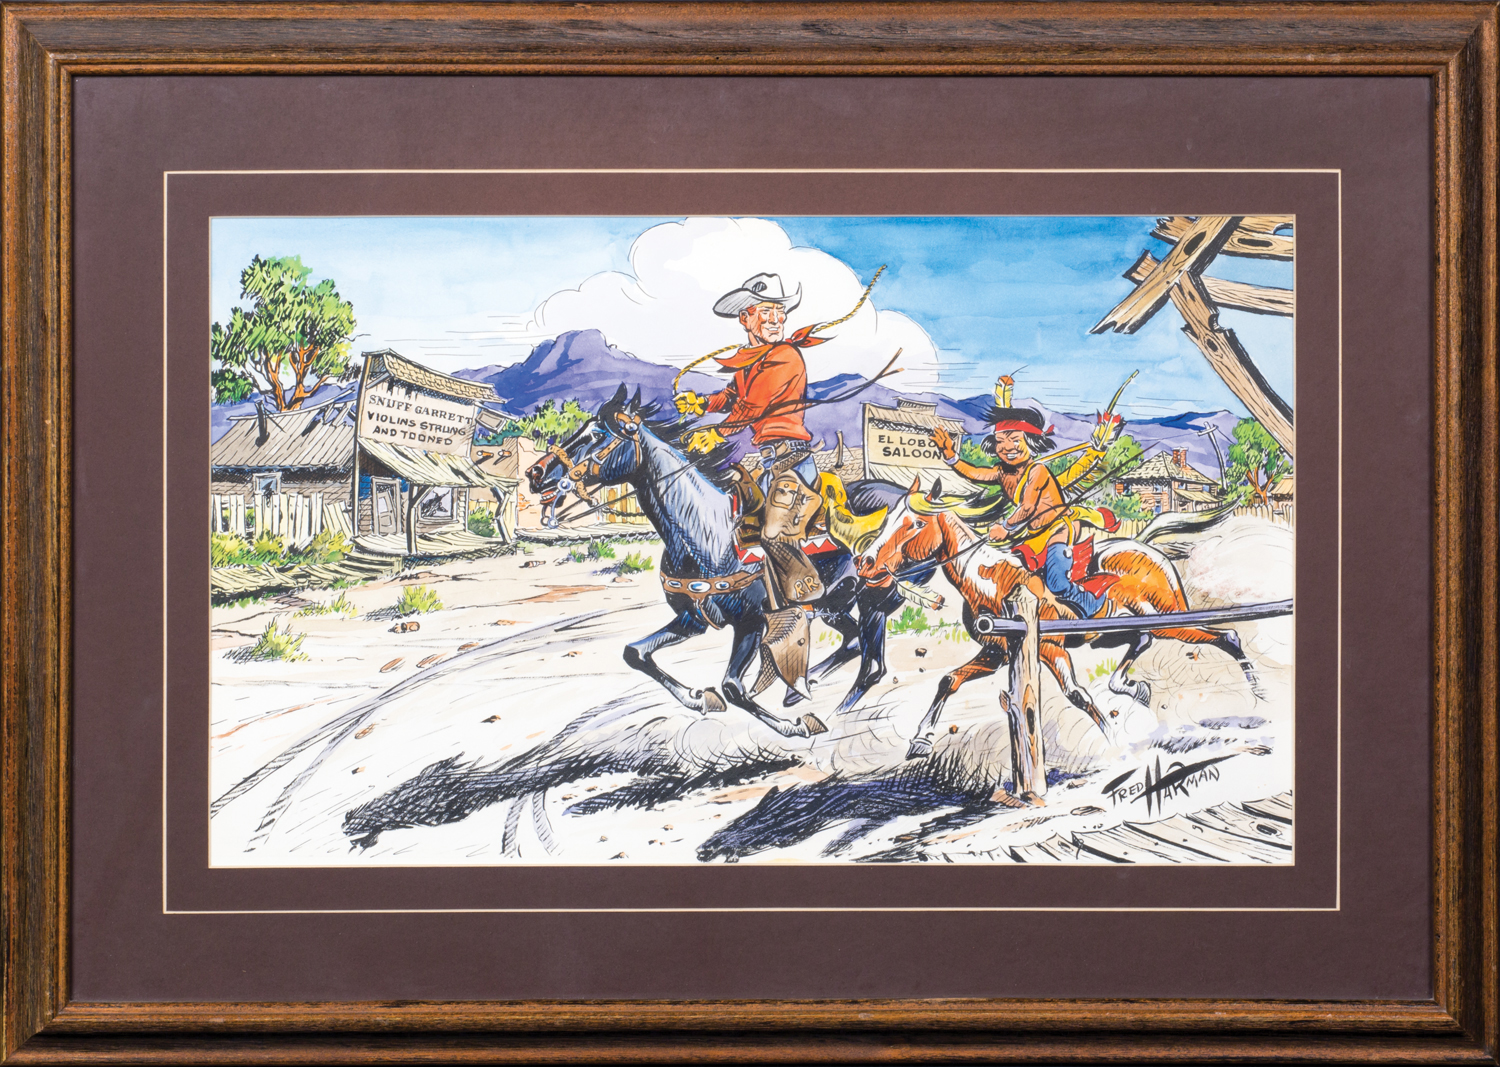 "Lot 164, Fred Harman, Red Ryder Illustration, Watercolor & ink, 12 1/2"" x 21"" Provenance: From the Estate of Snuff Garrett. Sold $5,015"